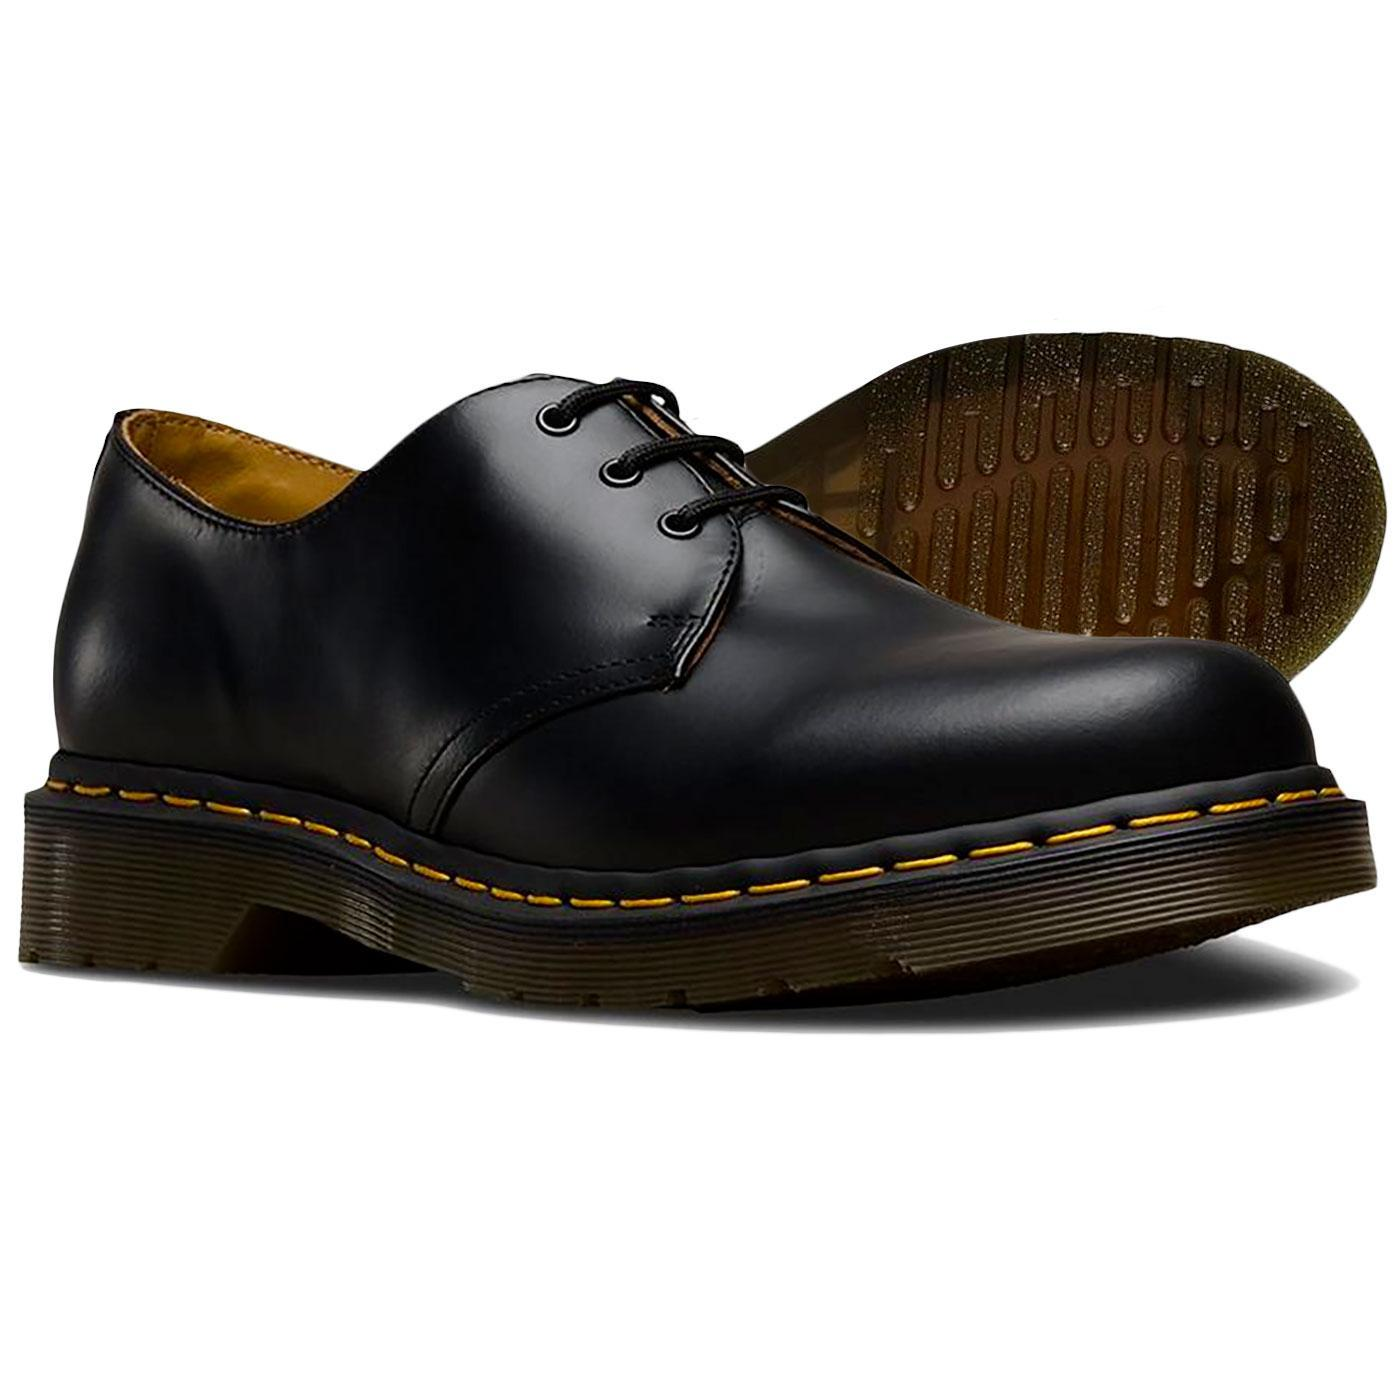 1461 DR MARTENS Womens Smooth Leather Oxford Shoes